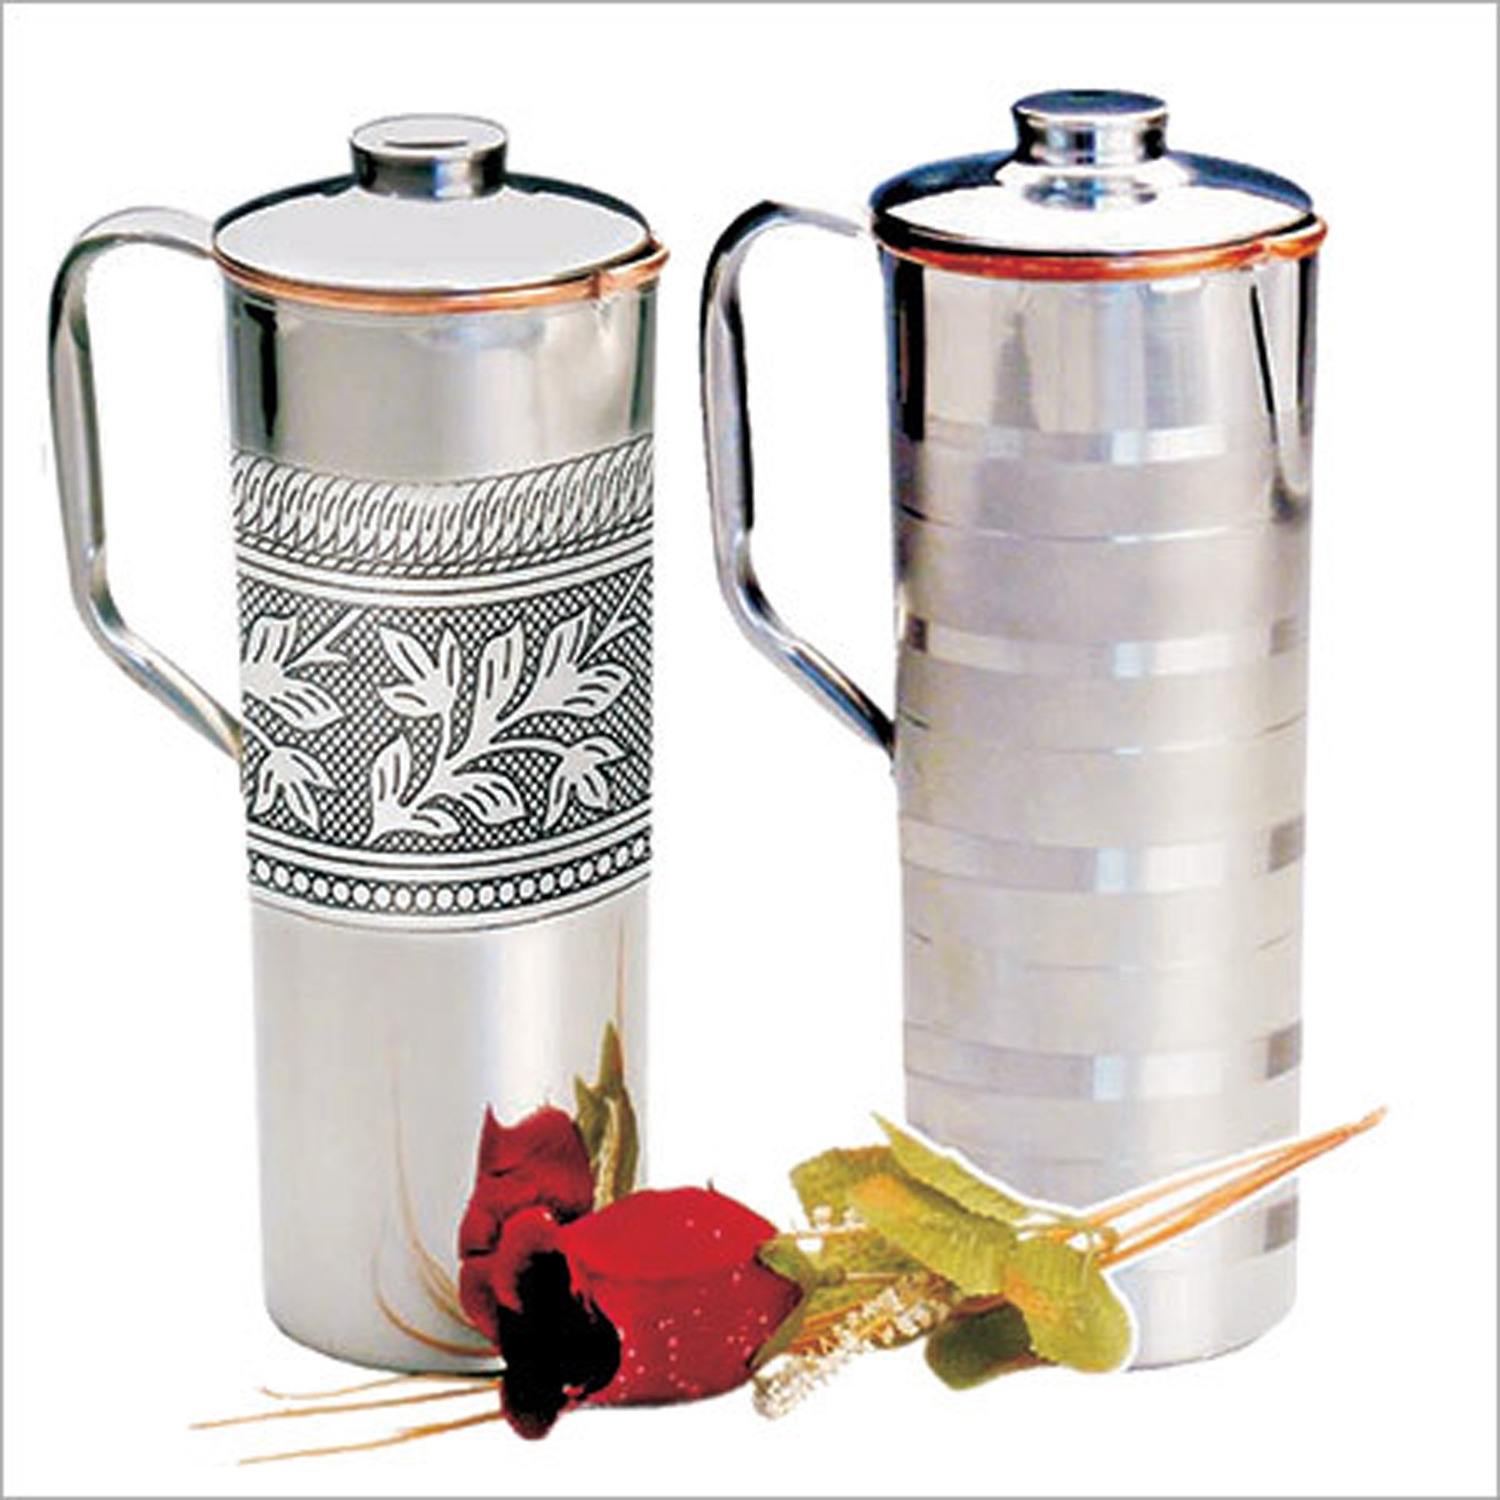 Copper Fridge Bottle Set Luxury Embossed Design Drinkware Tableware jug for Ayurveda Healing Capacity 0.9 L India Copper Jug (Set of 2) - CHRISTMAS GIFT by Prisha India Craft B.